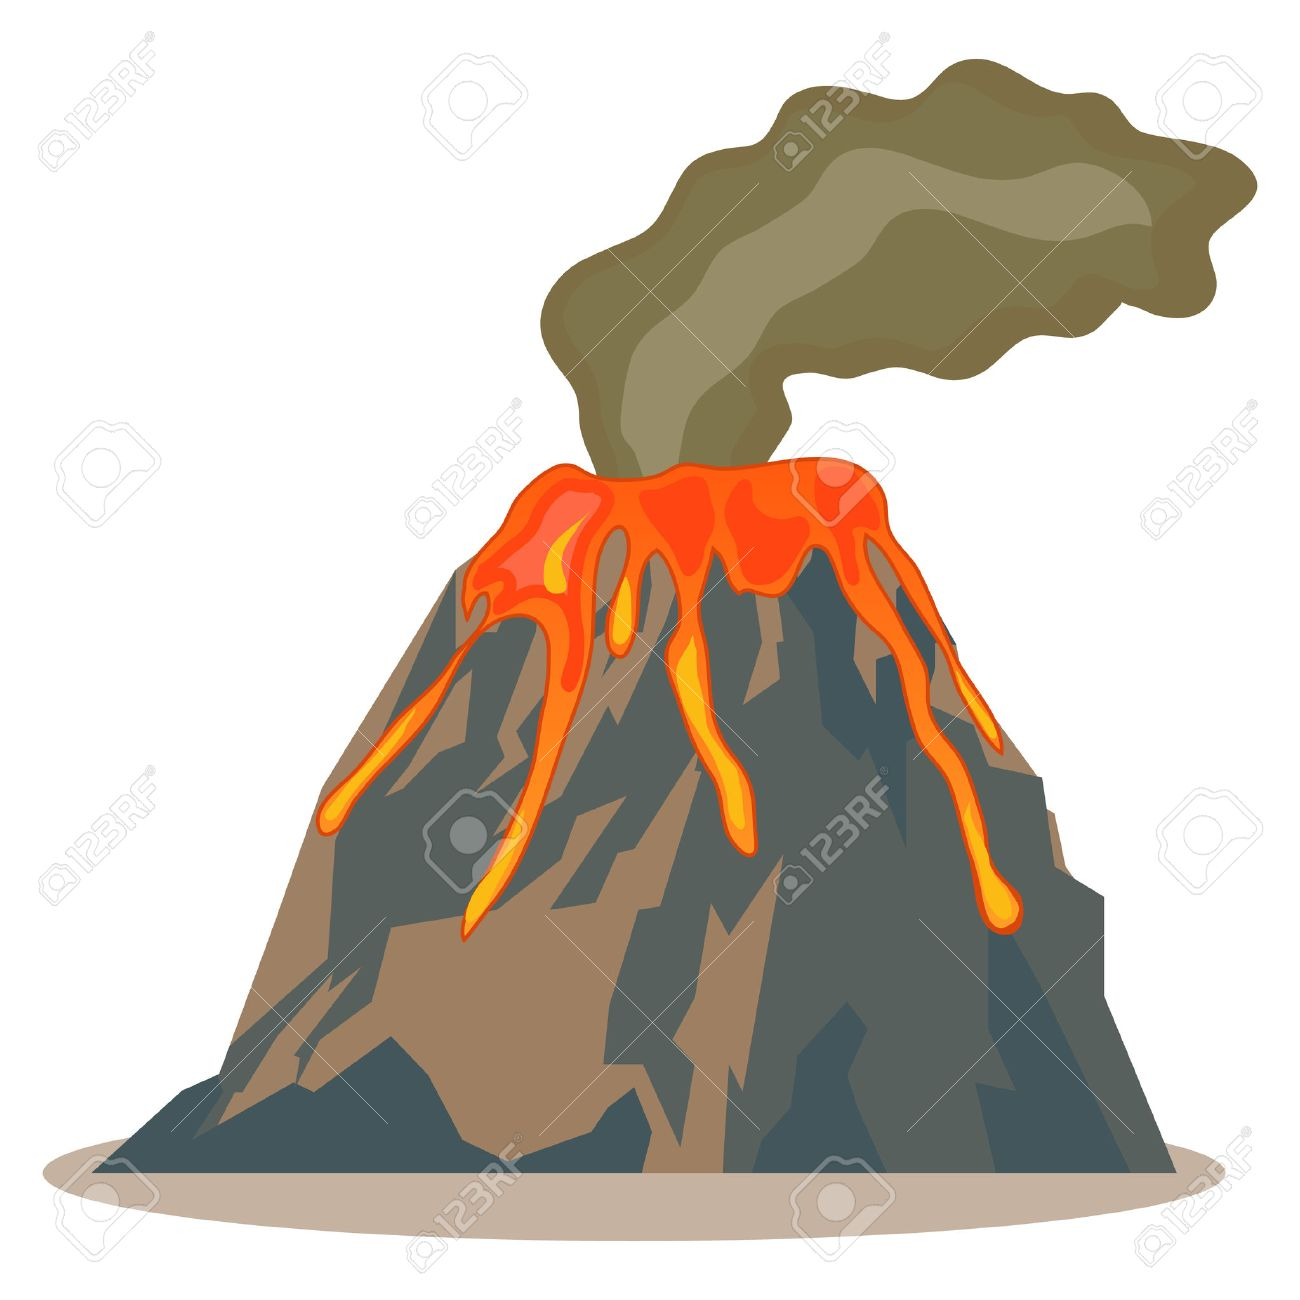 1300x1300 Volcano, Volcano Icon, Lava, Mountain Flat Design Vector